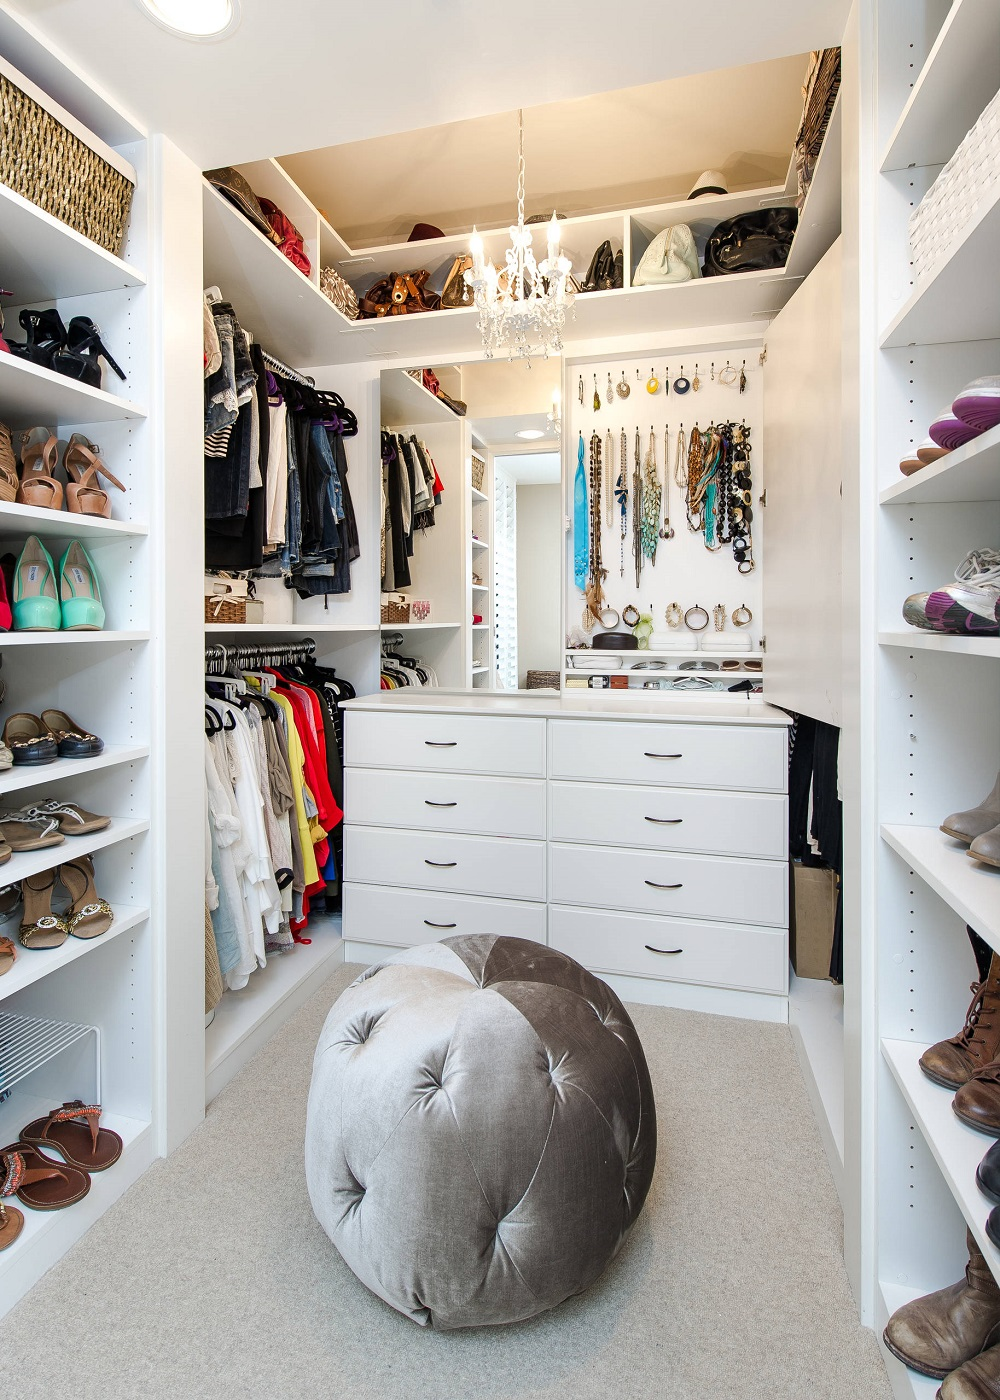 wc16 Cool ideas for walk-in closets that you should have in your home